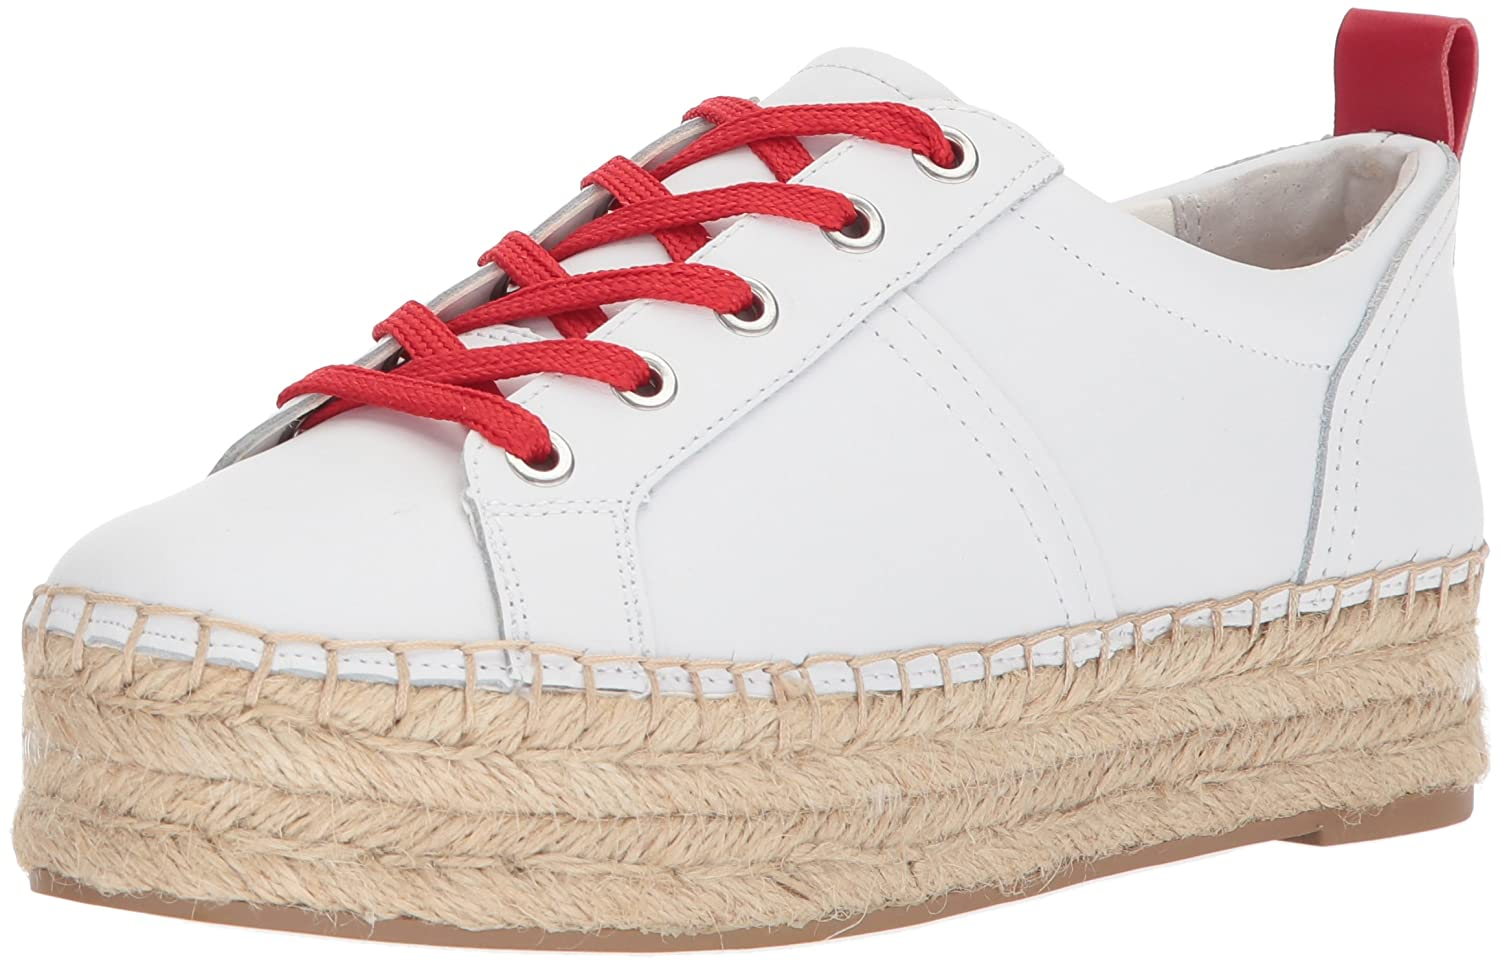 Sam Edelman Women's Carleigh Sneaker B072N9CJPL 9 B(M) US|Super White/Candy Red